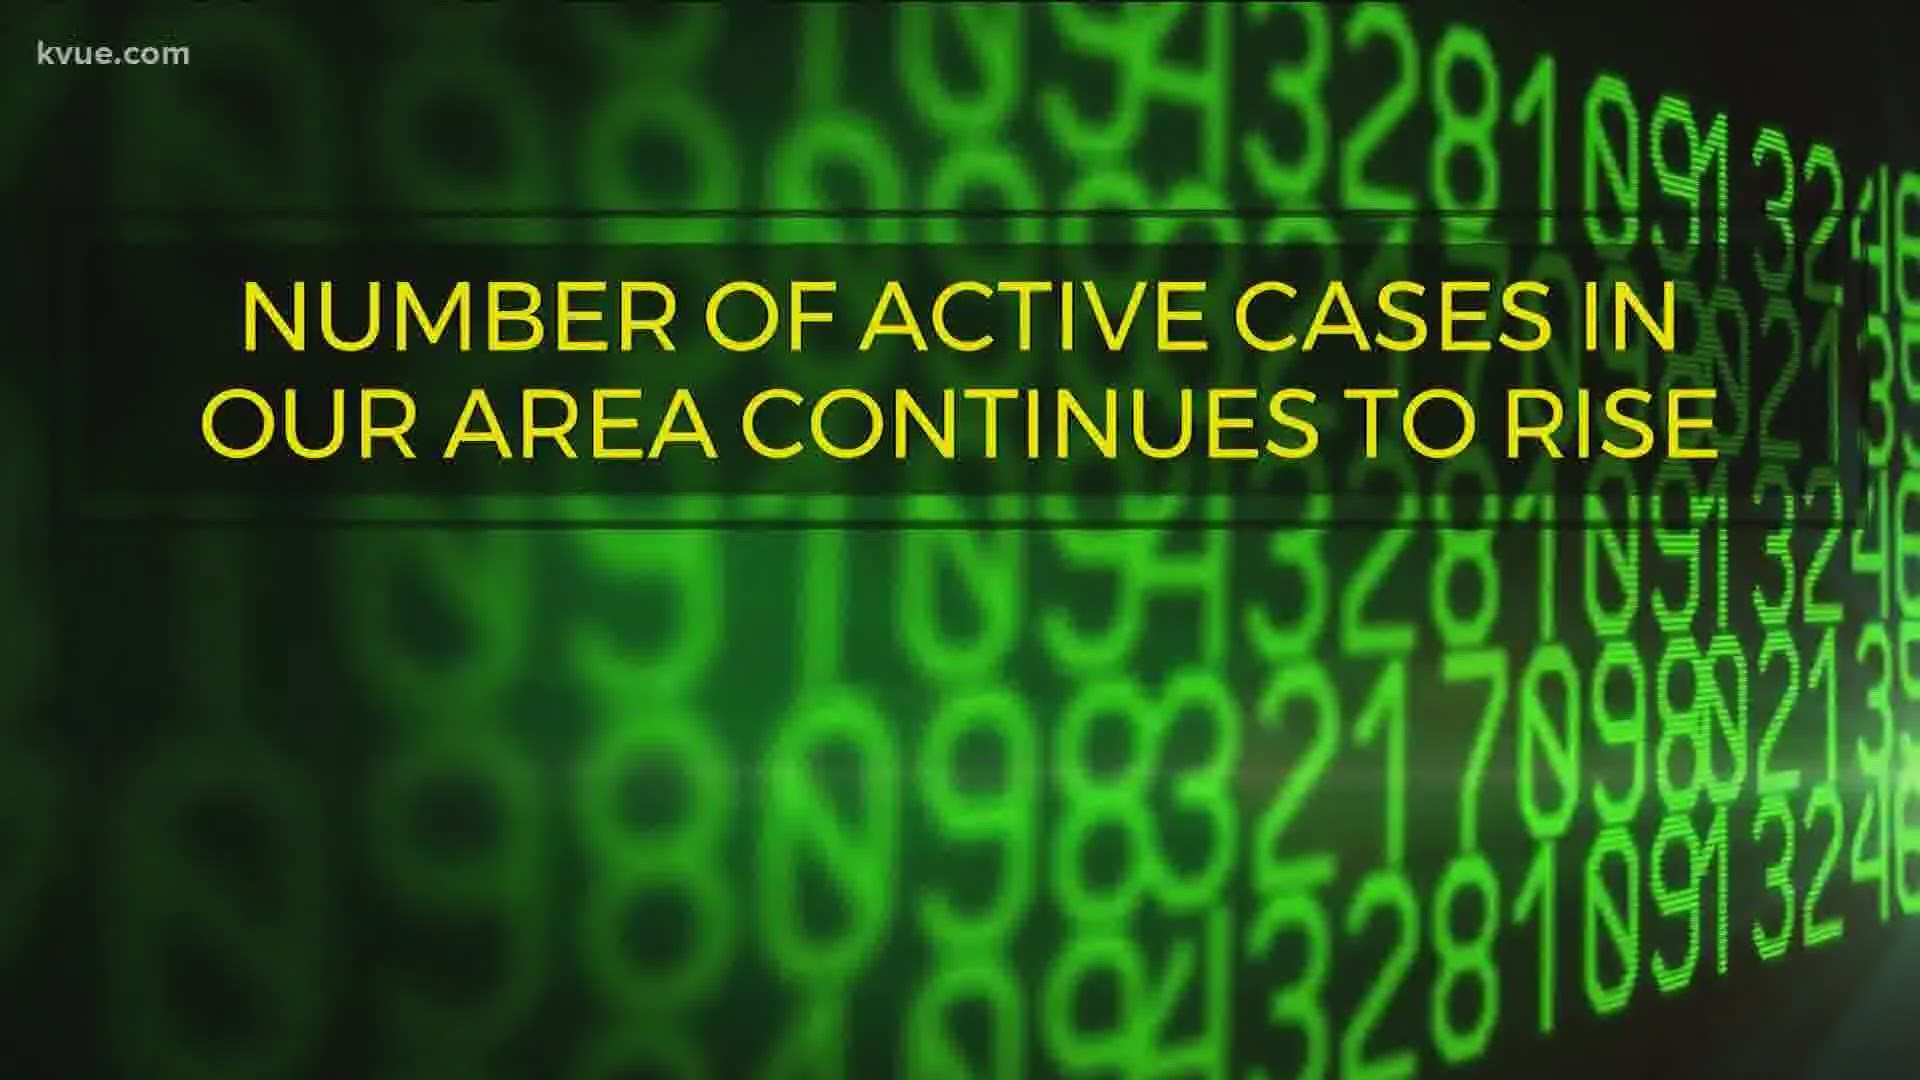 active covid 19 cases jump in travis williamson hays and bastrop counties wgrz com wgrz com